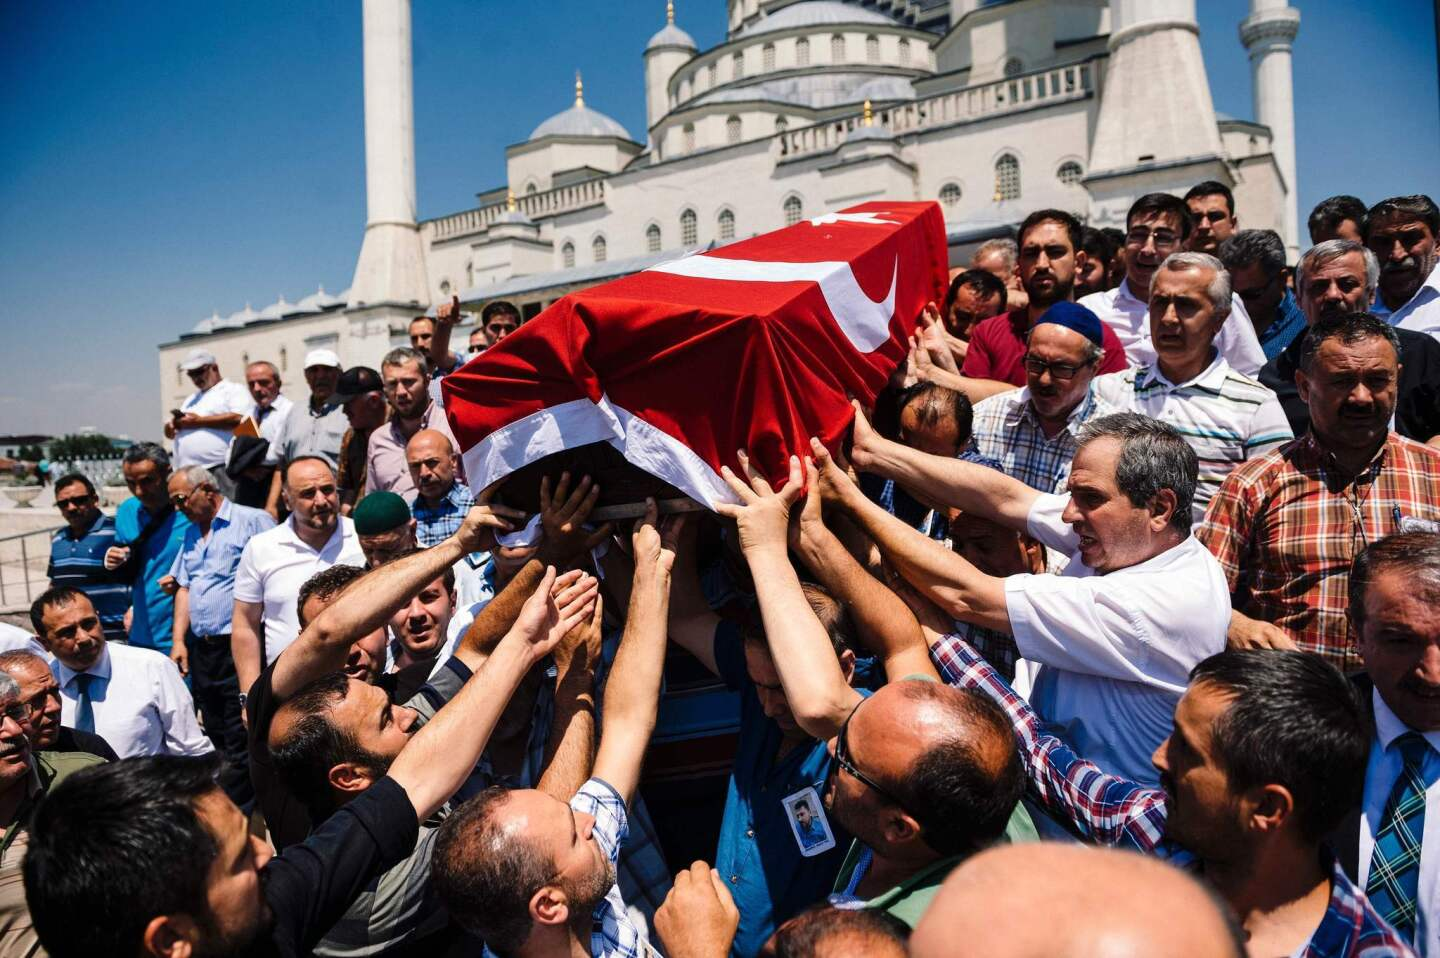 Mourners carry the coffin of a man who died during the coup attempt at a funeral ceremony at Kocatepe Mosque in Ankara, Turkey. Support from the highest ranks in the army helped keep President Recep Tayyip Erdogan in power.